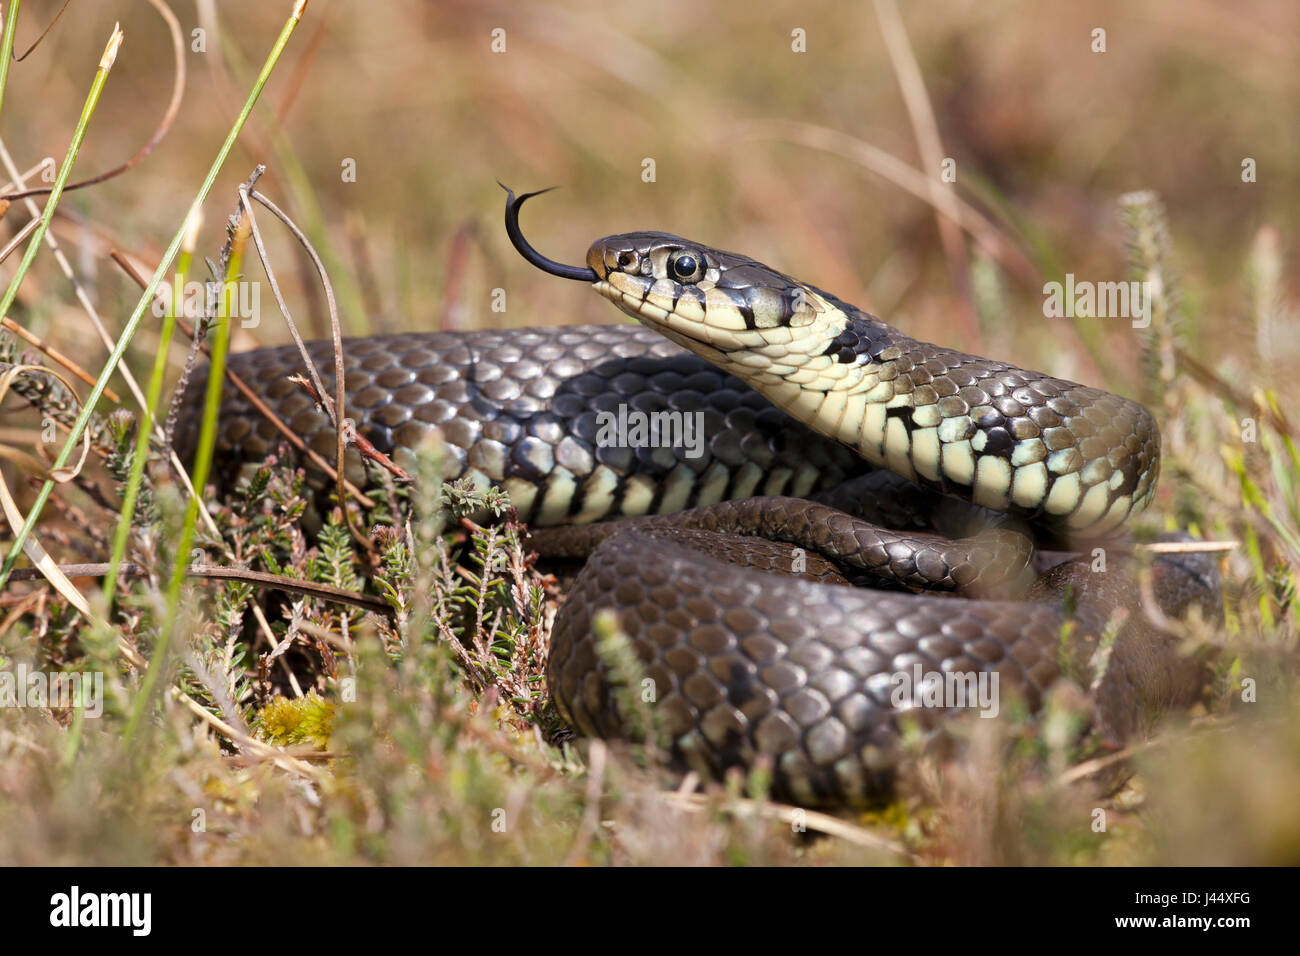 photo of a basking grass snake between heather vegetation - Stock Image